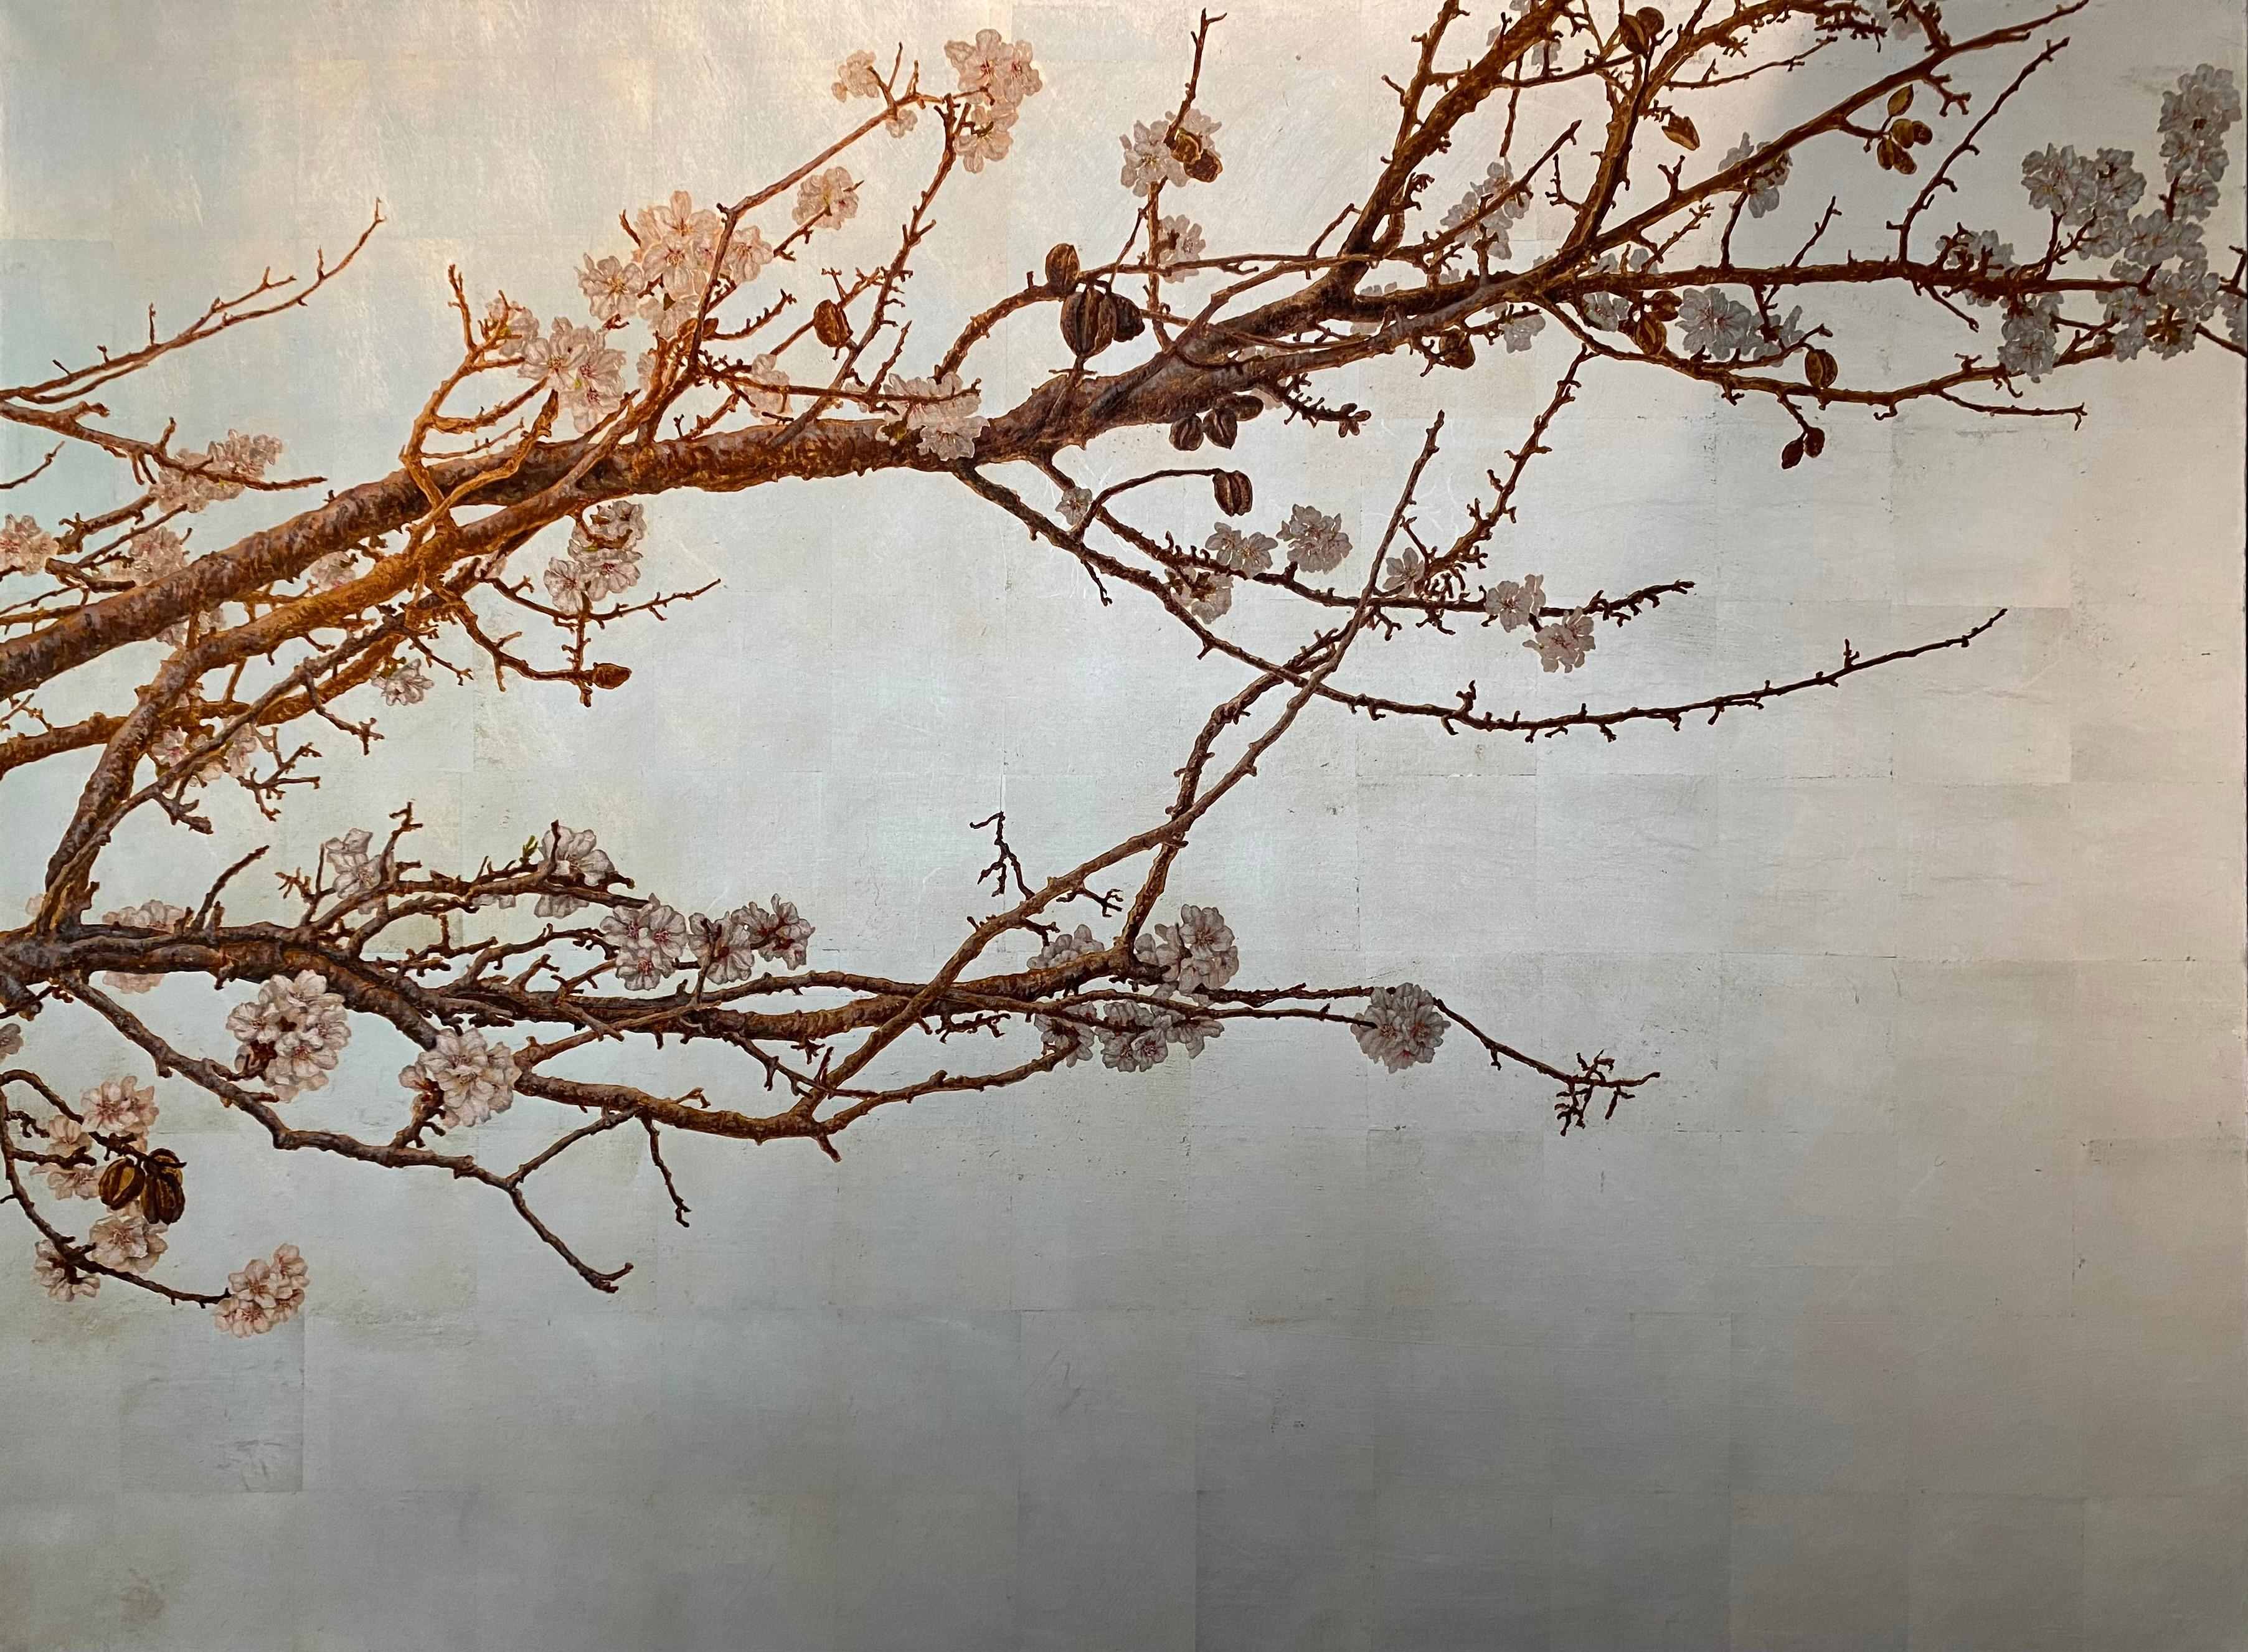 Elegant and Poetic Almond Tree on Silver Leaf Background by Italian Painter